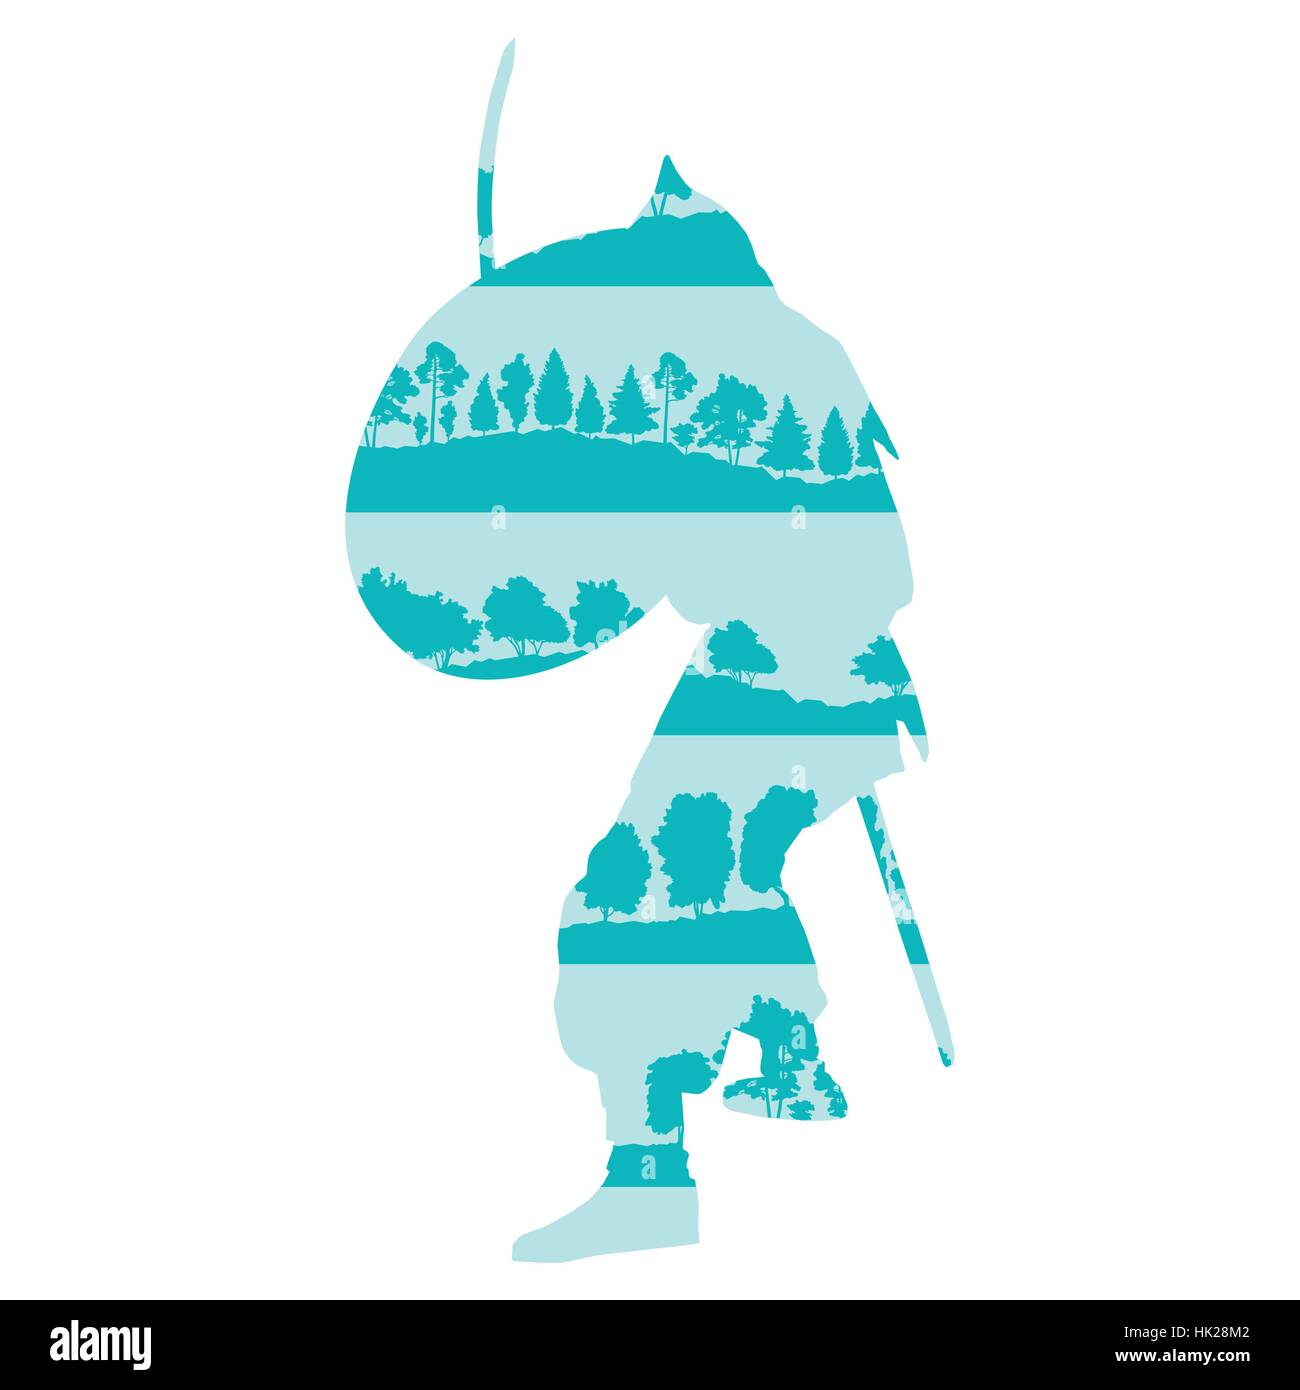 Crusades Stock Vector Images - Alamy